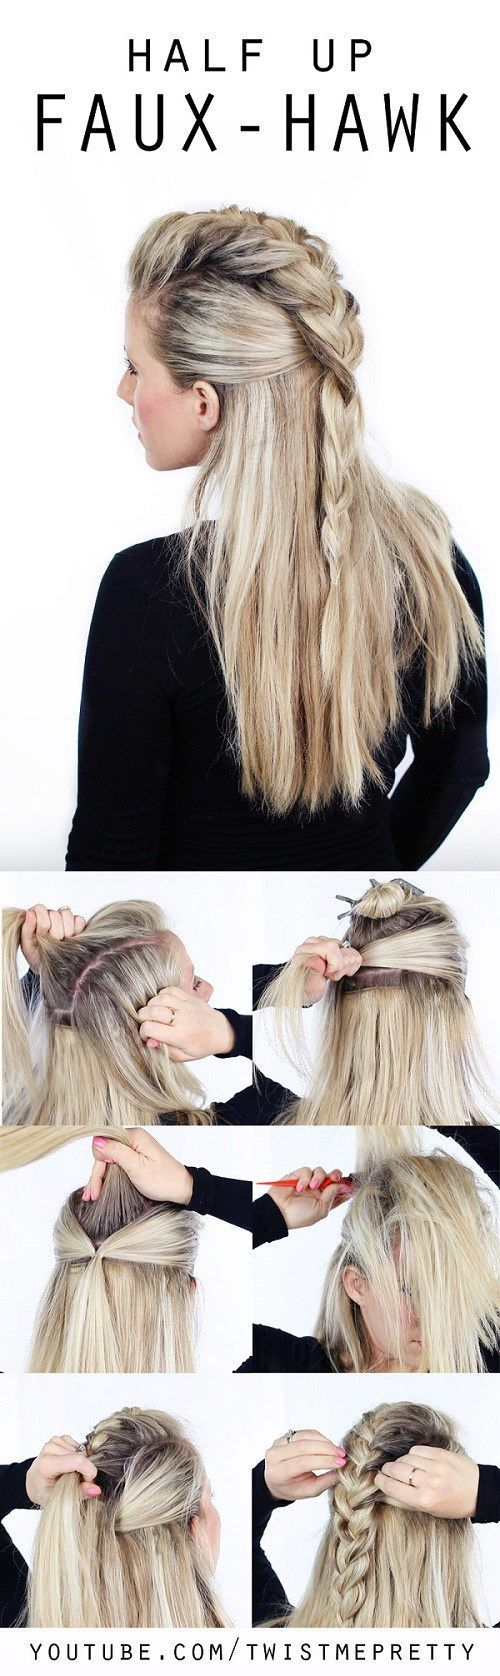 Diy Fauxhawk Braid Step By Step: